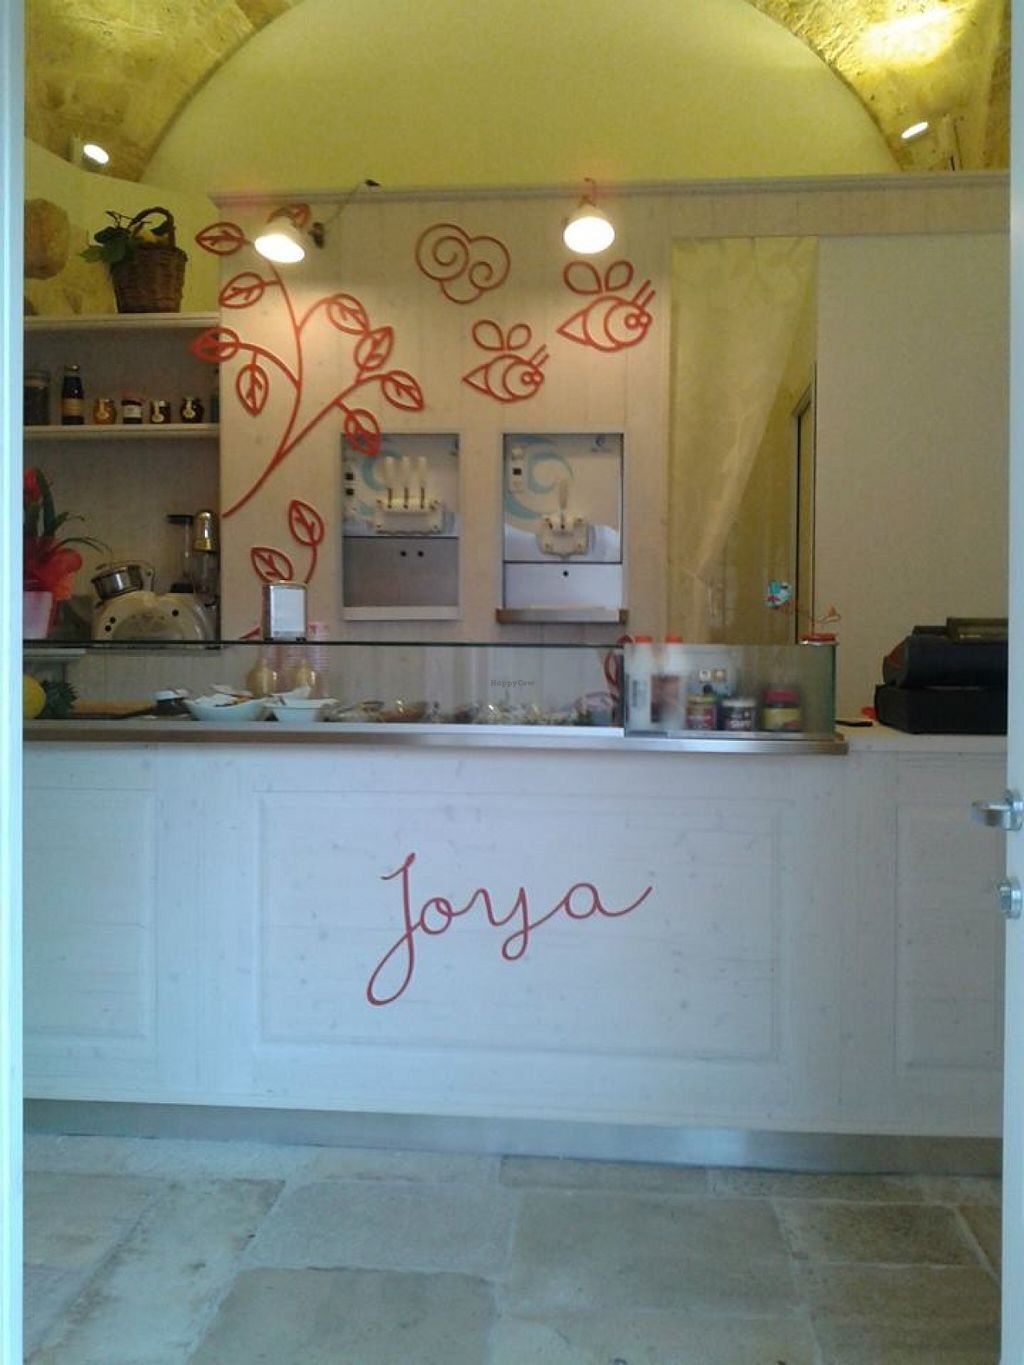 """Photo of Joya Canti di Stagione  by <a href=""""/members/profile/community"""">community</a> <br/>inside joya  <br/> June 21, 2016  - <a href='/contact/abuse/image/74847/155224'>Report</a>"""